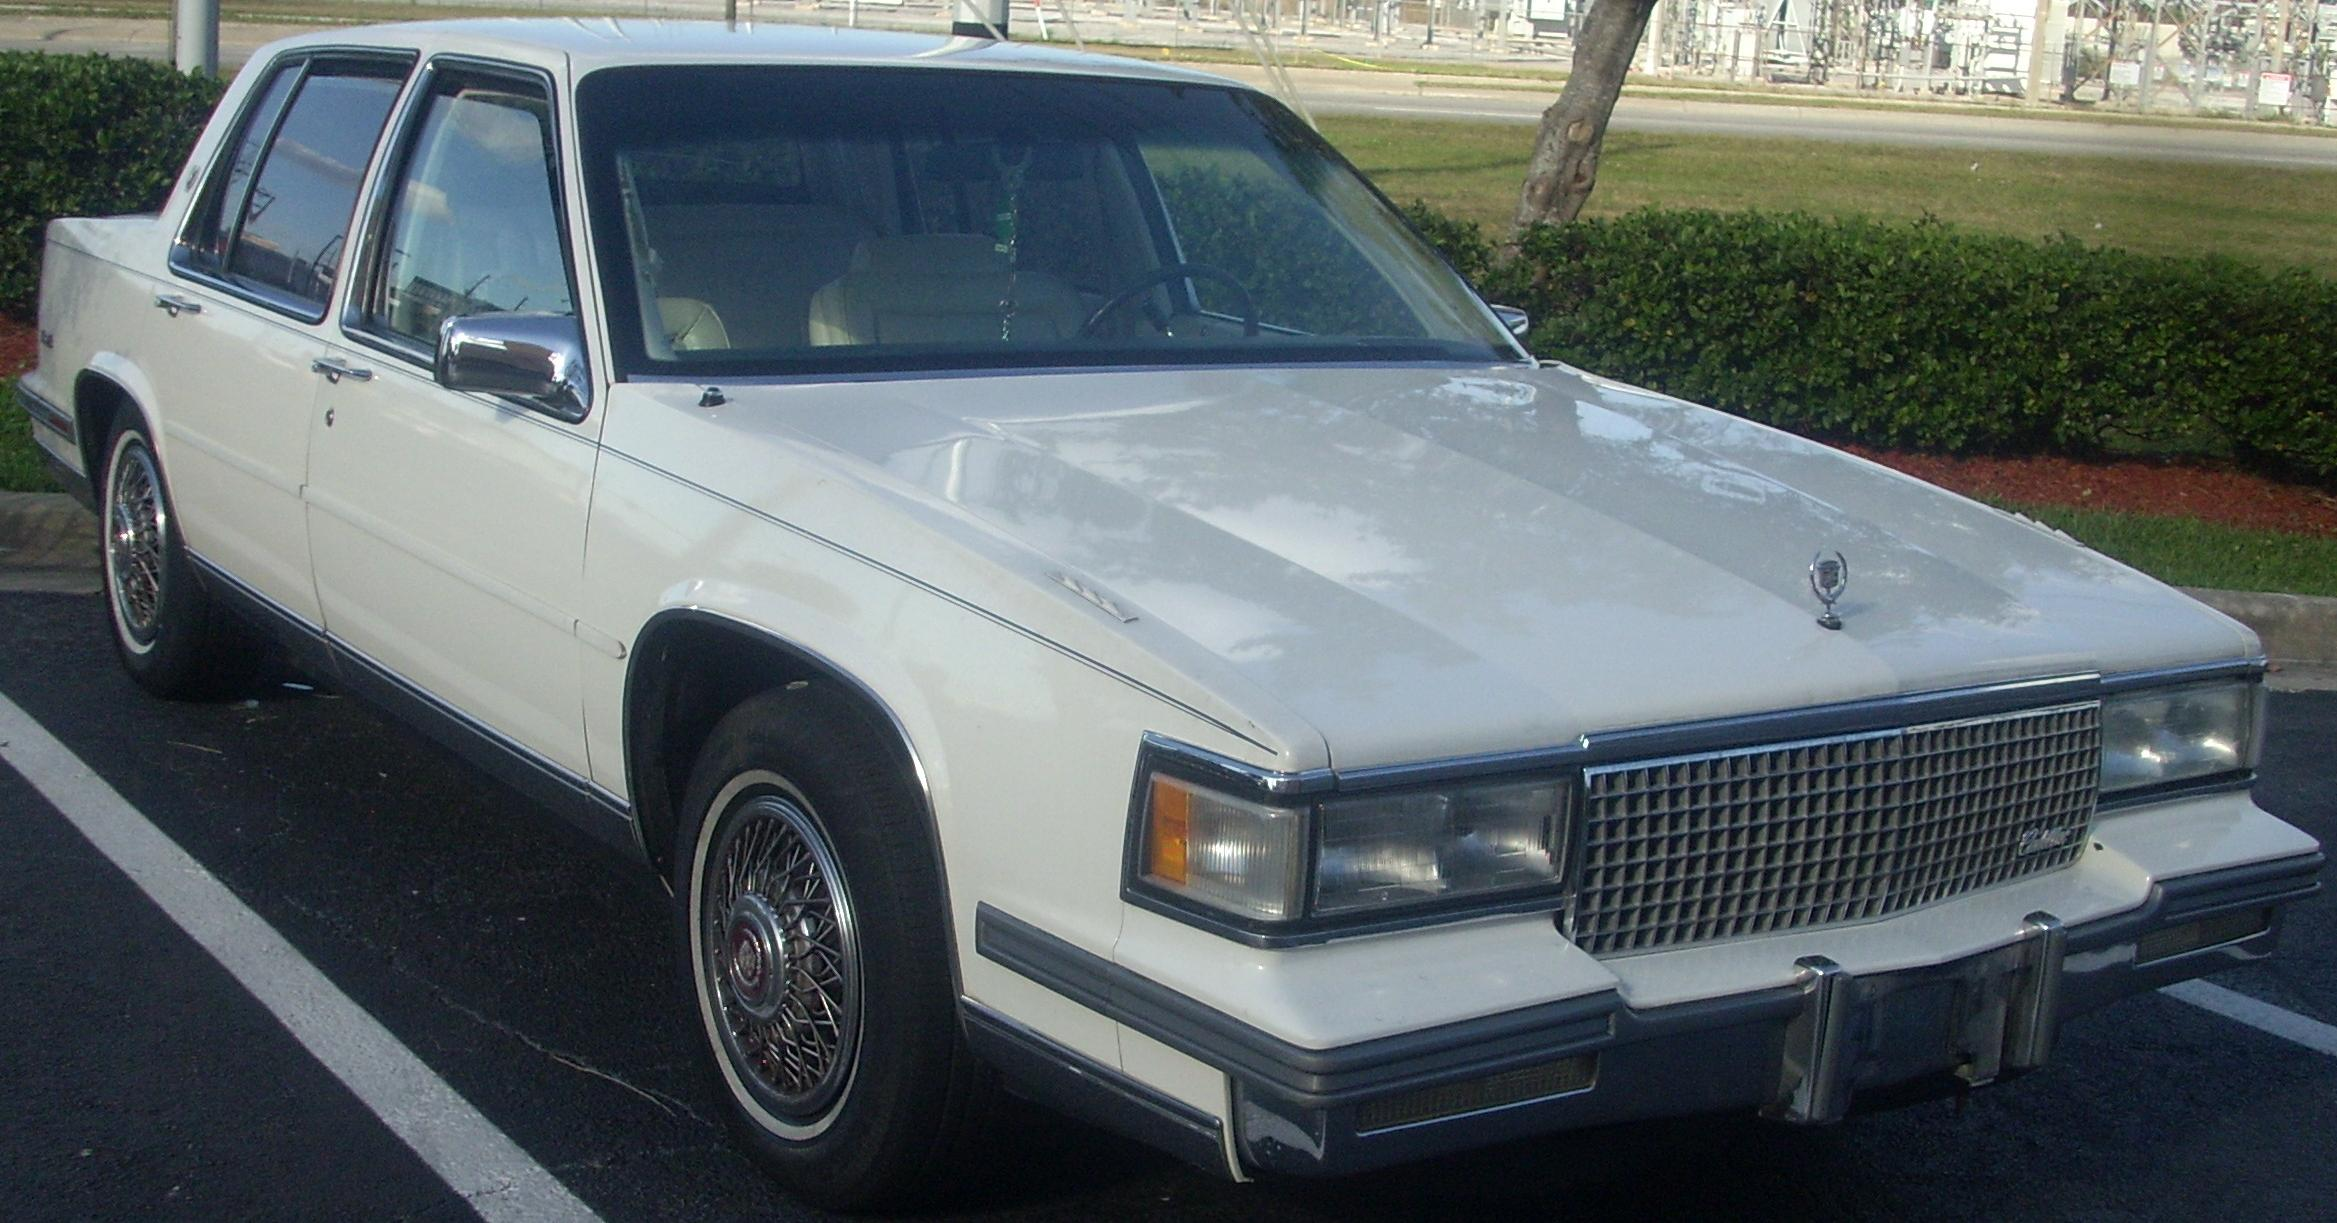 Photos Cadillac Seville Elegante 1980 85 316701 as well Wallpapers Cadillac Eldorado Biarritz 1957 318131 likewise 1956 20Cadillac 04 likewise 1959 Cadillac as well Cadillac Seville Iv 4 1993 Models 284013. on cadillac seville